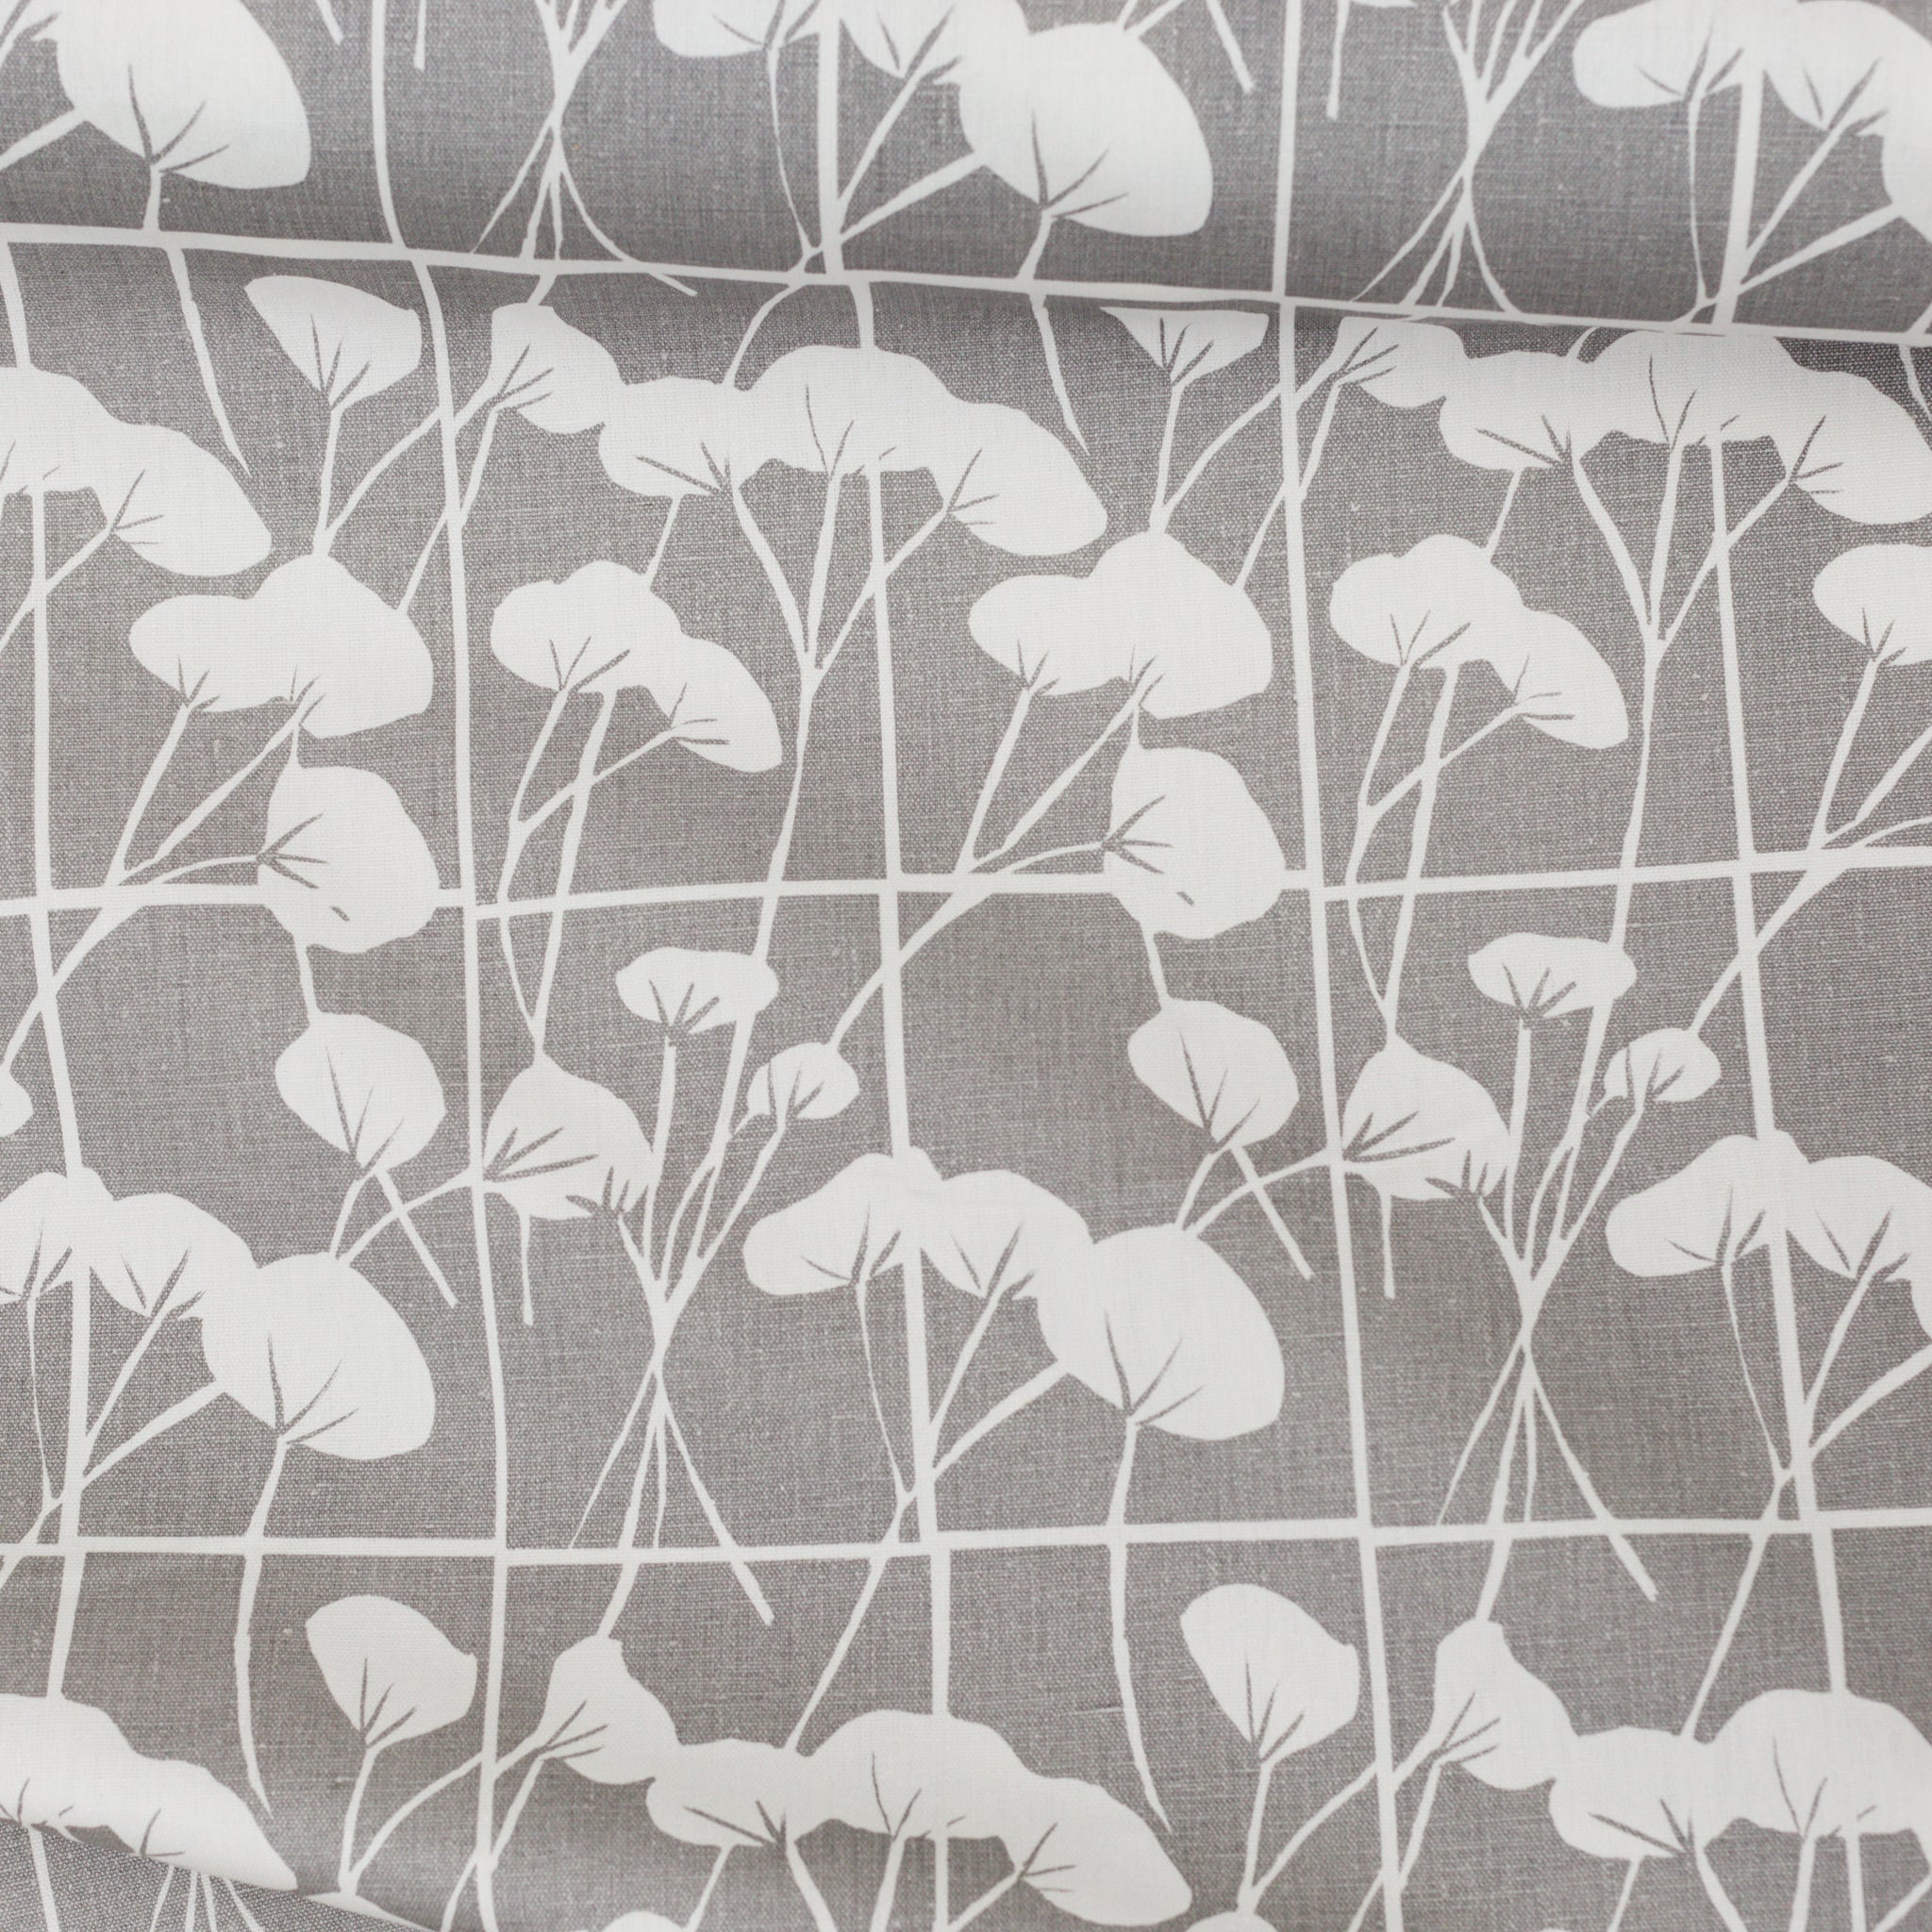 Screen printed fabric yardage with cotton plant